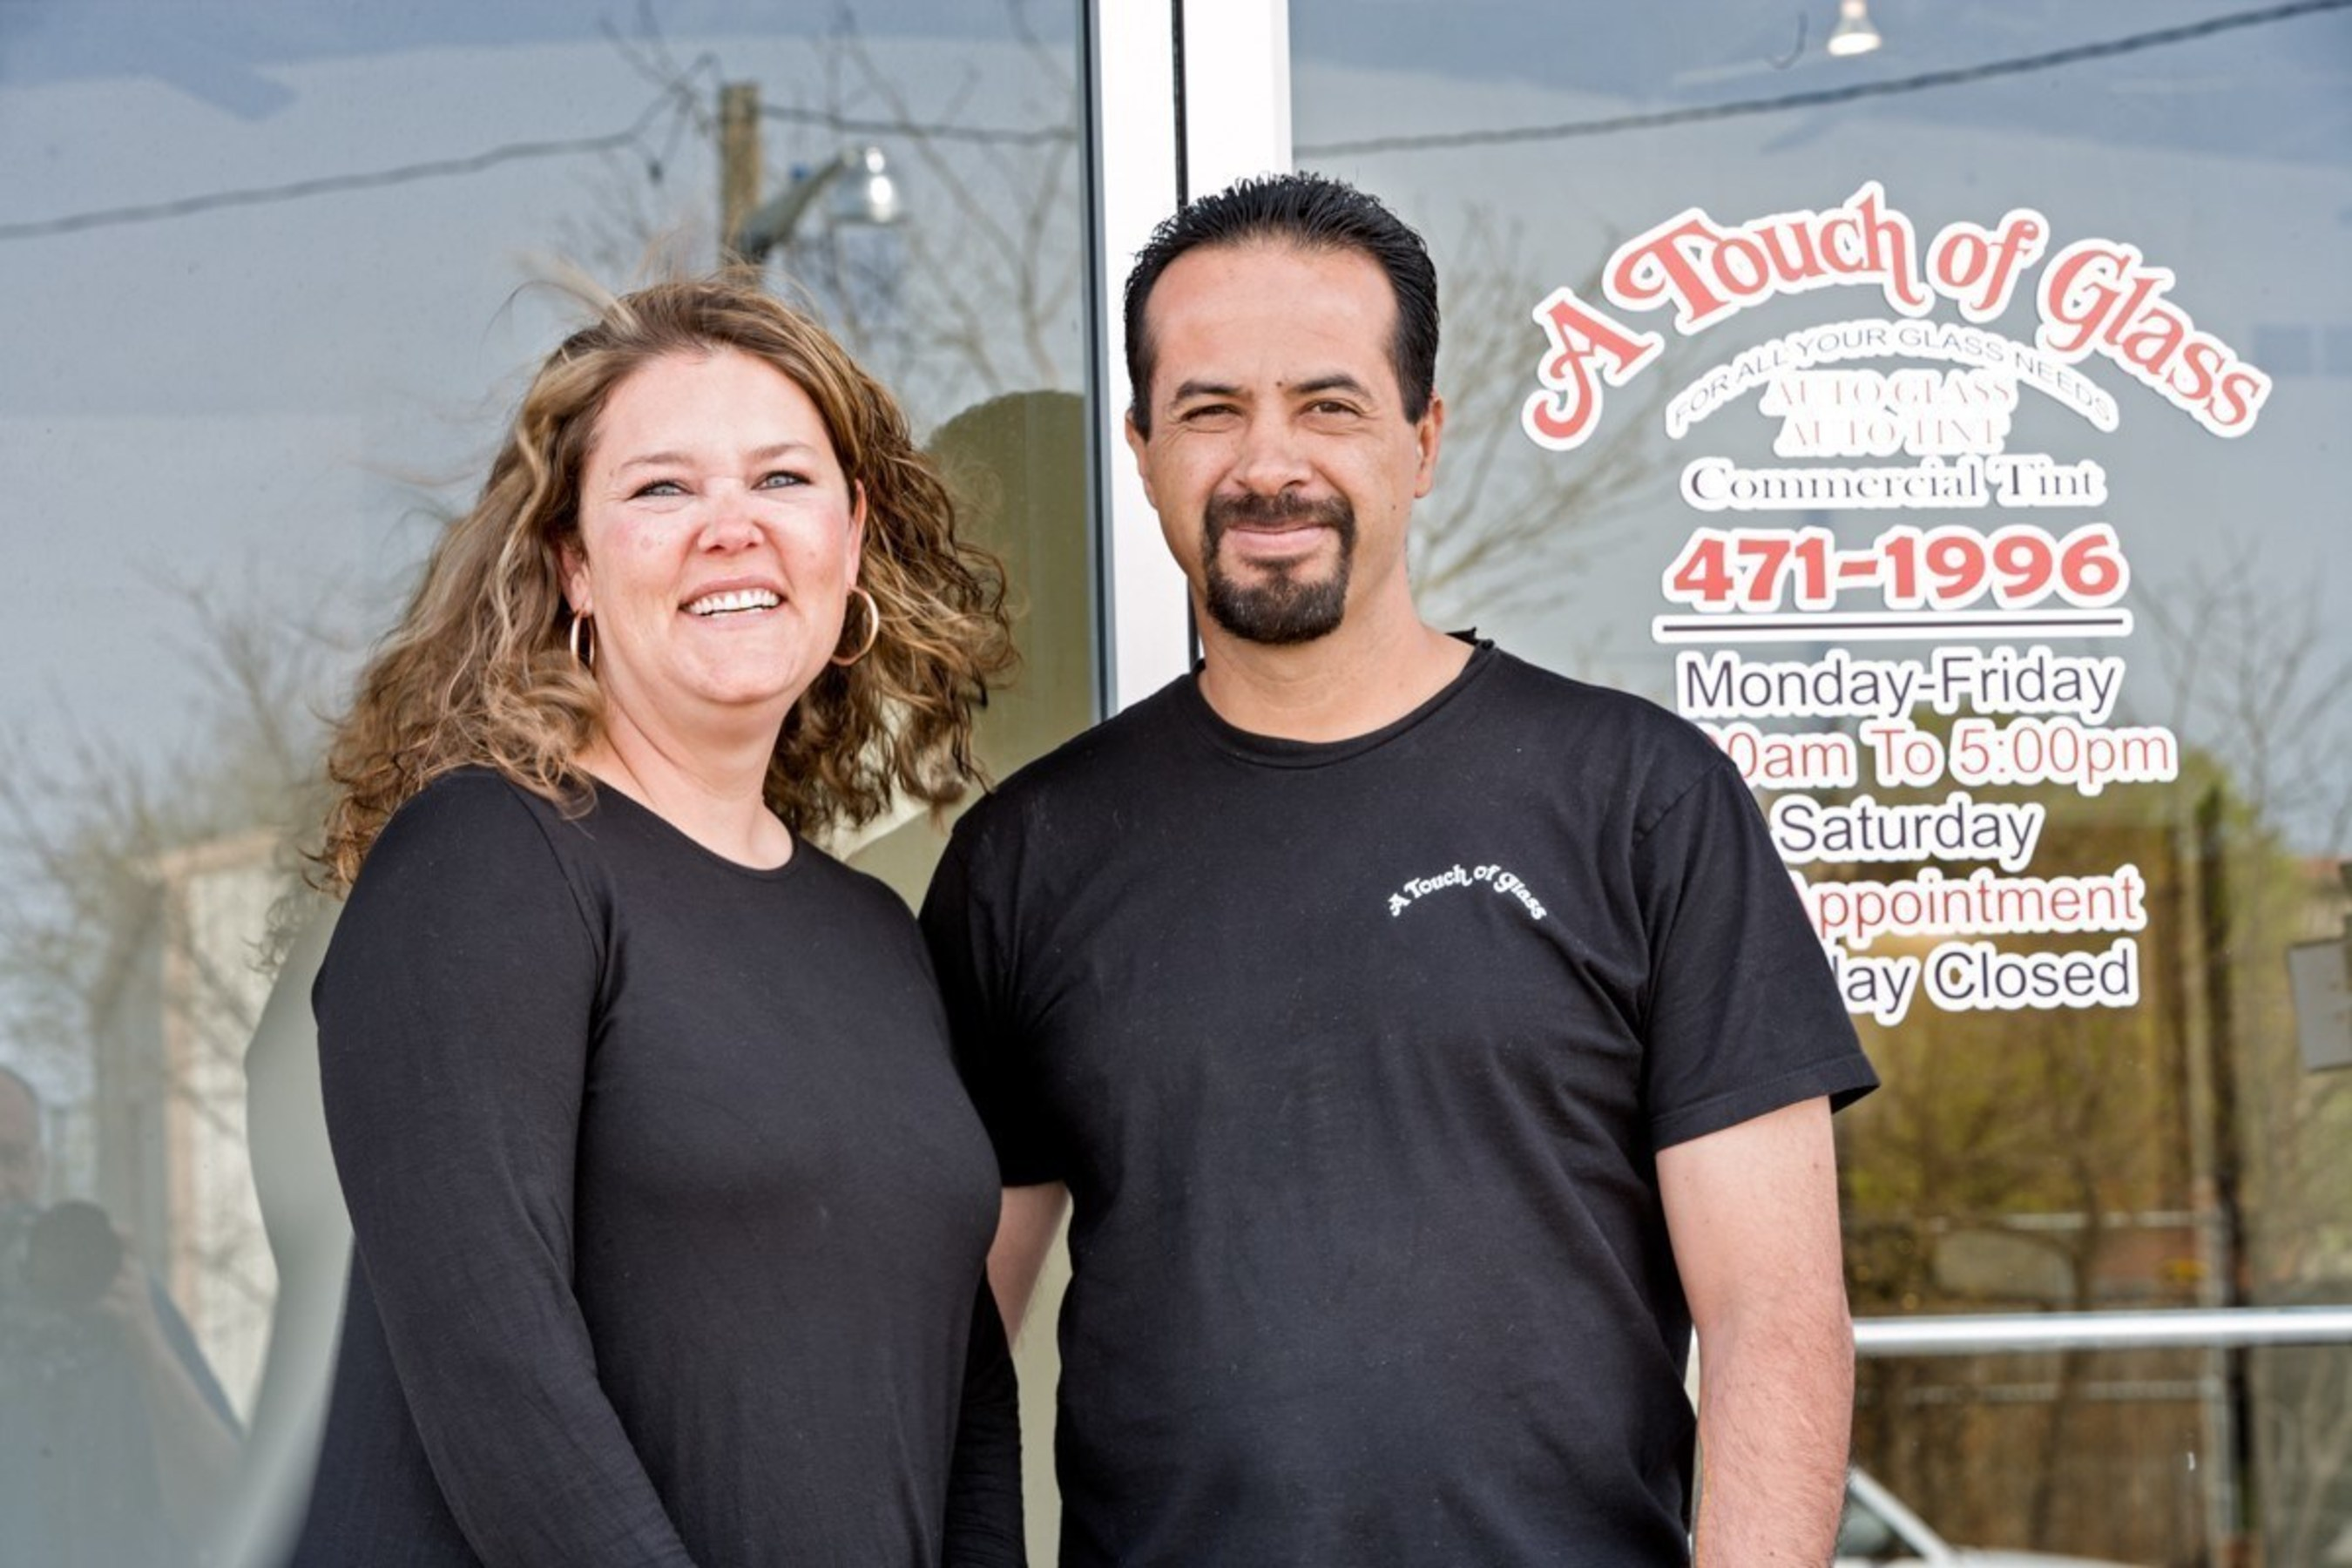 A Touch of Glass owners, Andy and Traci Carrillo, received a $25,000 small business grant from Century Bank and the Federal Home Loan Bank of Dallas to help renovate their new location.